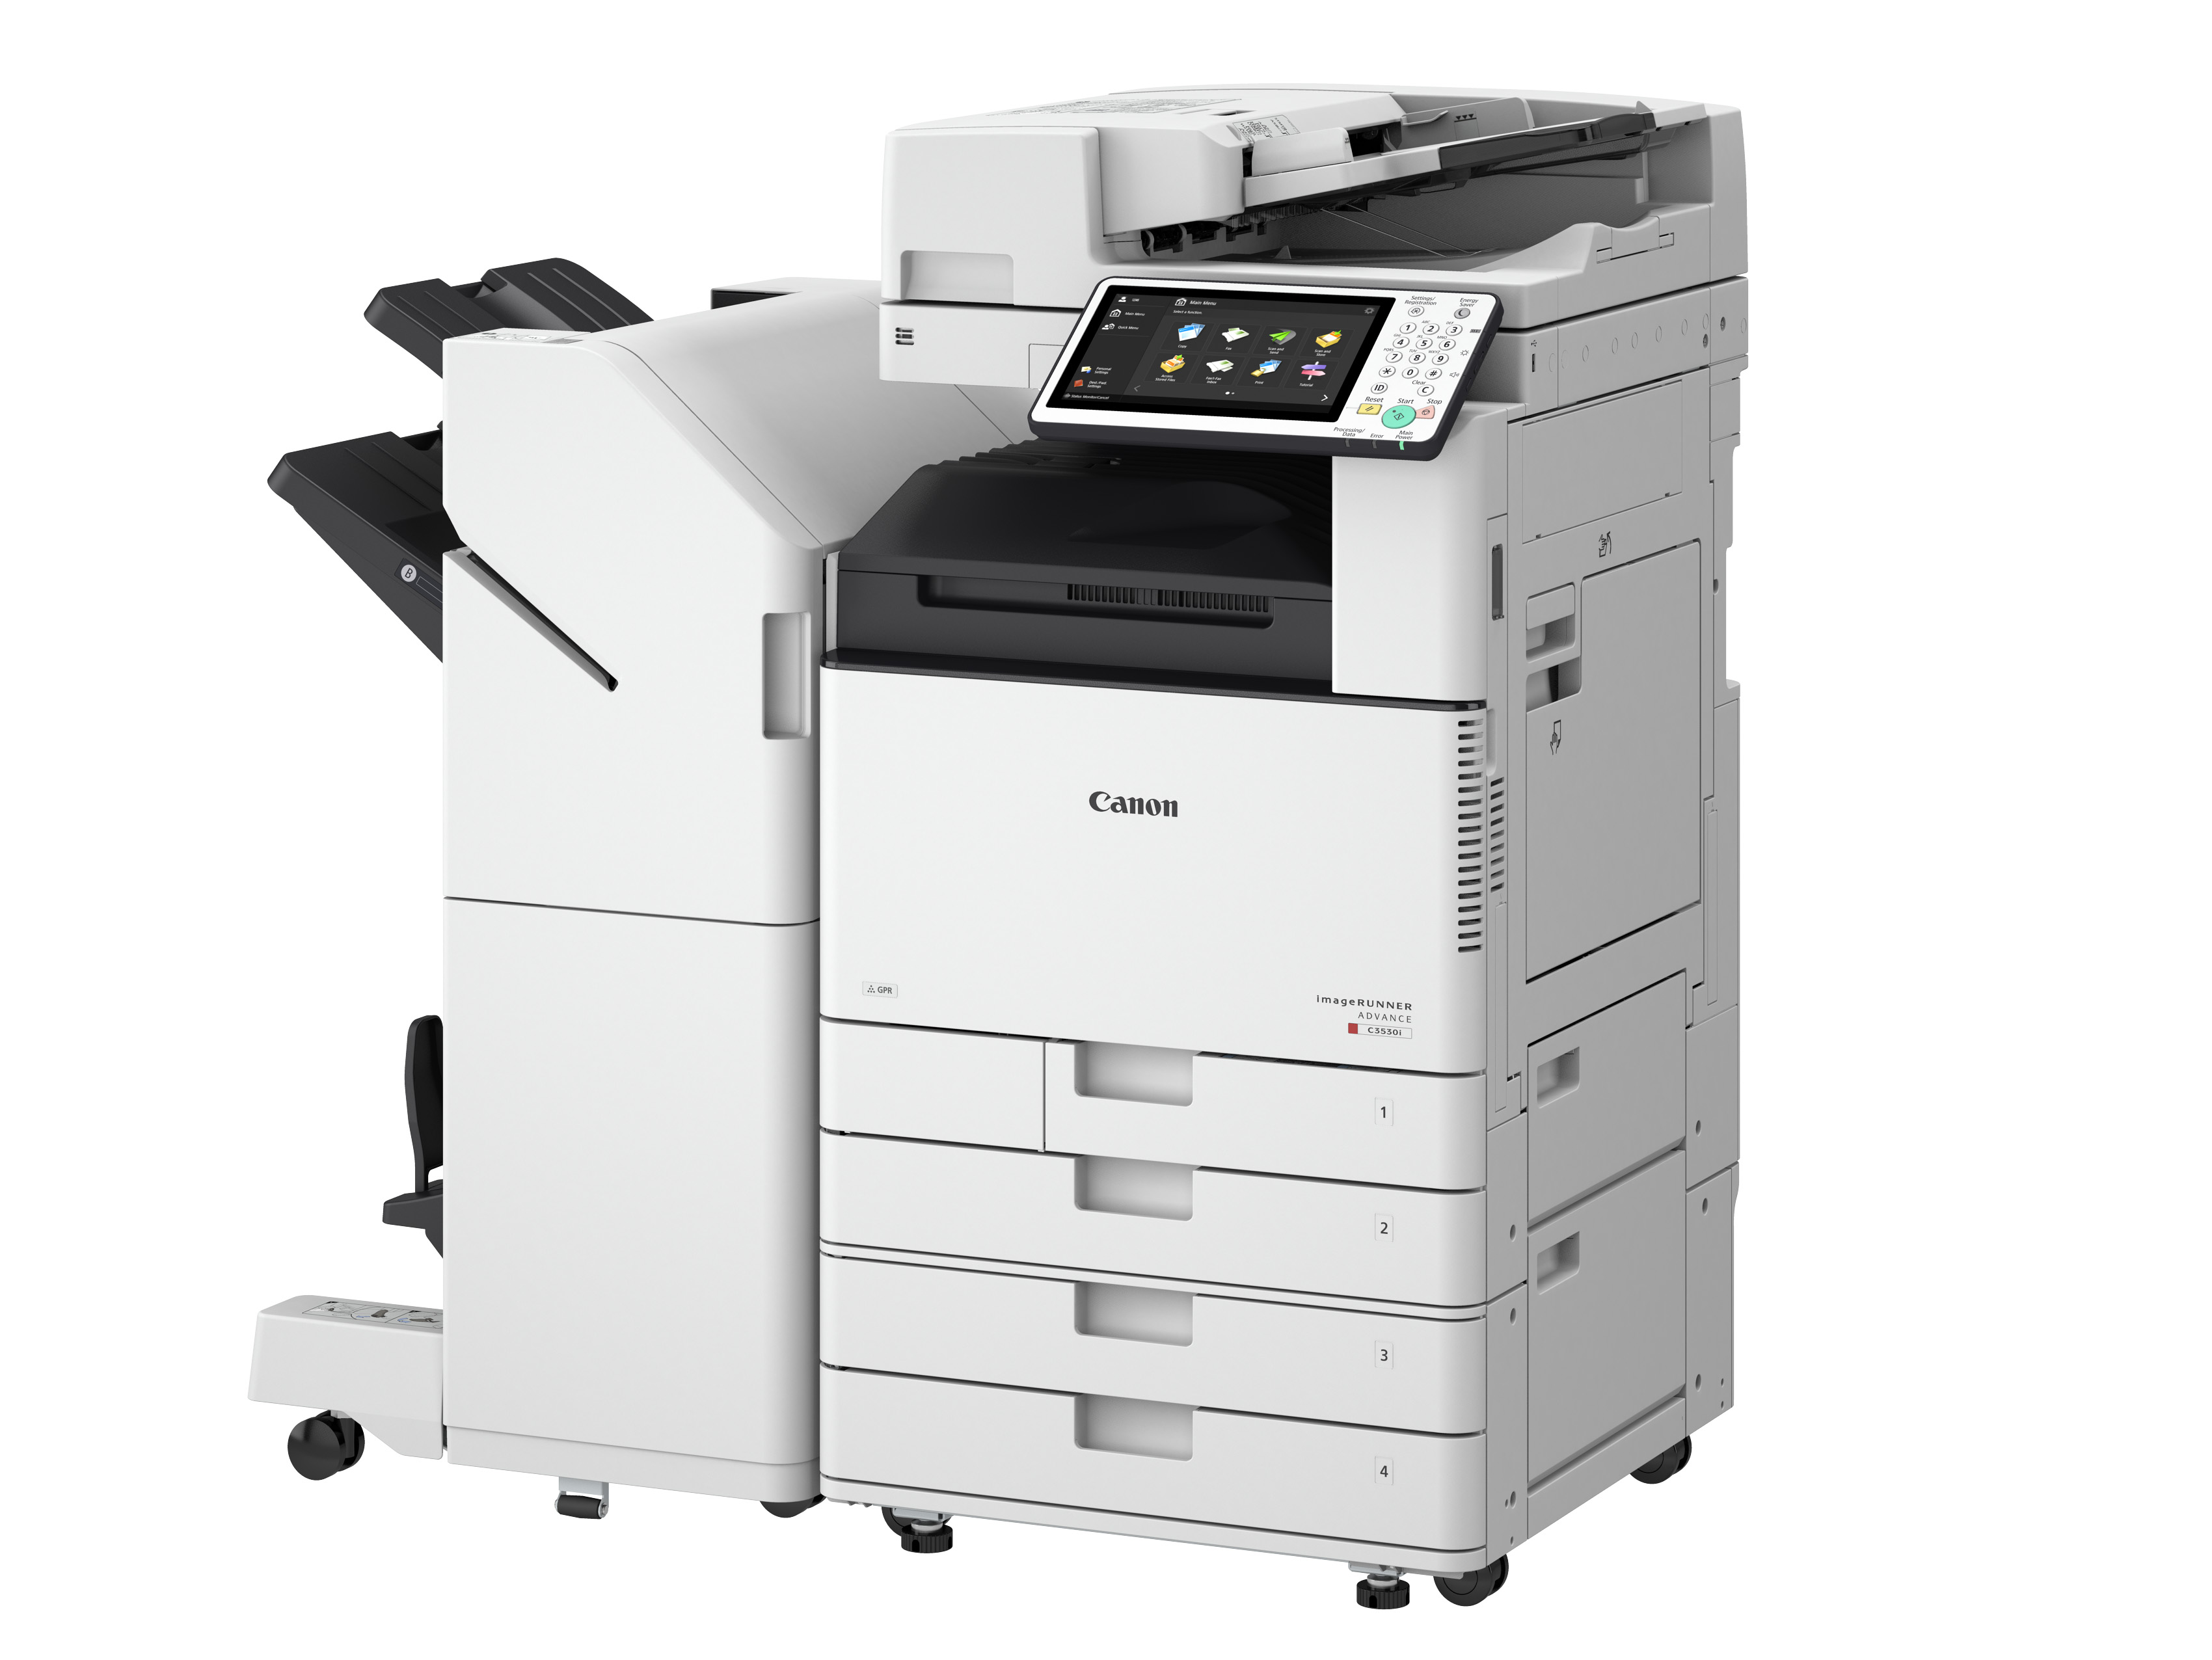 IMPRESORA MULTIFUNCIONAL IMAGERUNNER ADVANCE COLOR C3500 SERIE